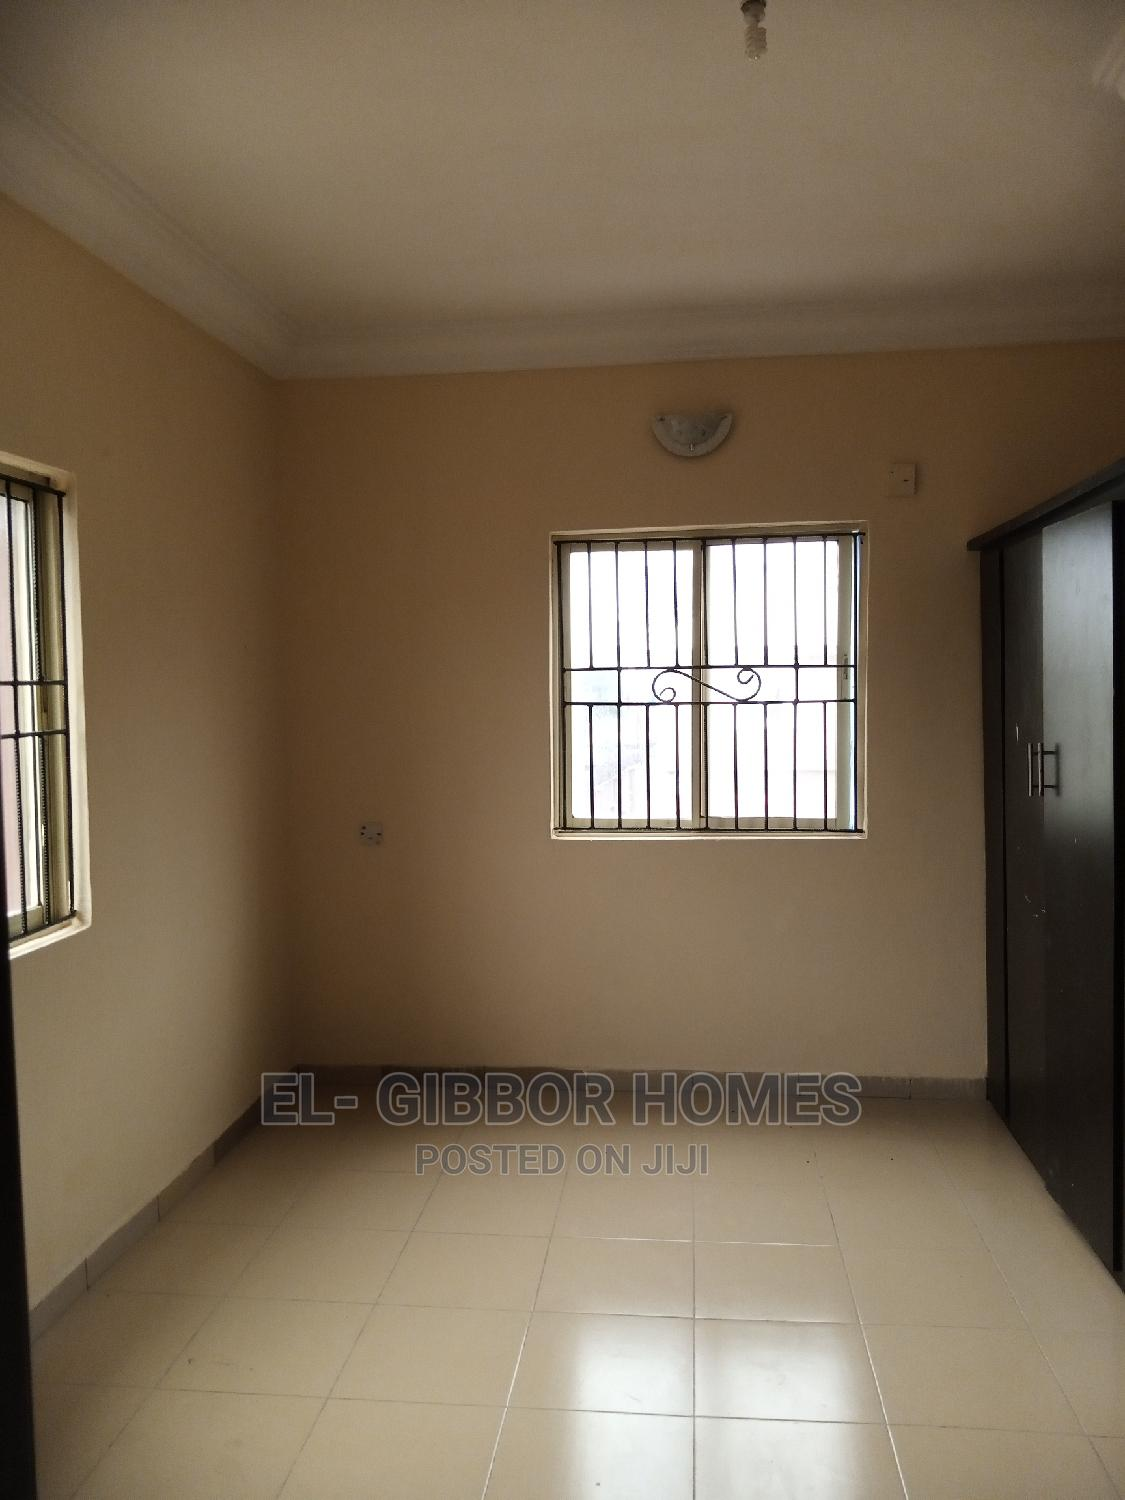 Furnished 2bdrm Apartment in Bashorun Estate, Sangotedo for Rent | Houses & Apartments For Rent for sale in Sangotedo, Ajah, Nigeria